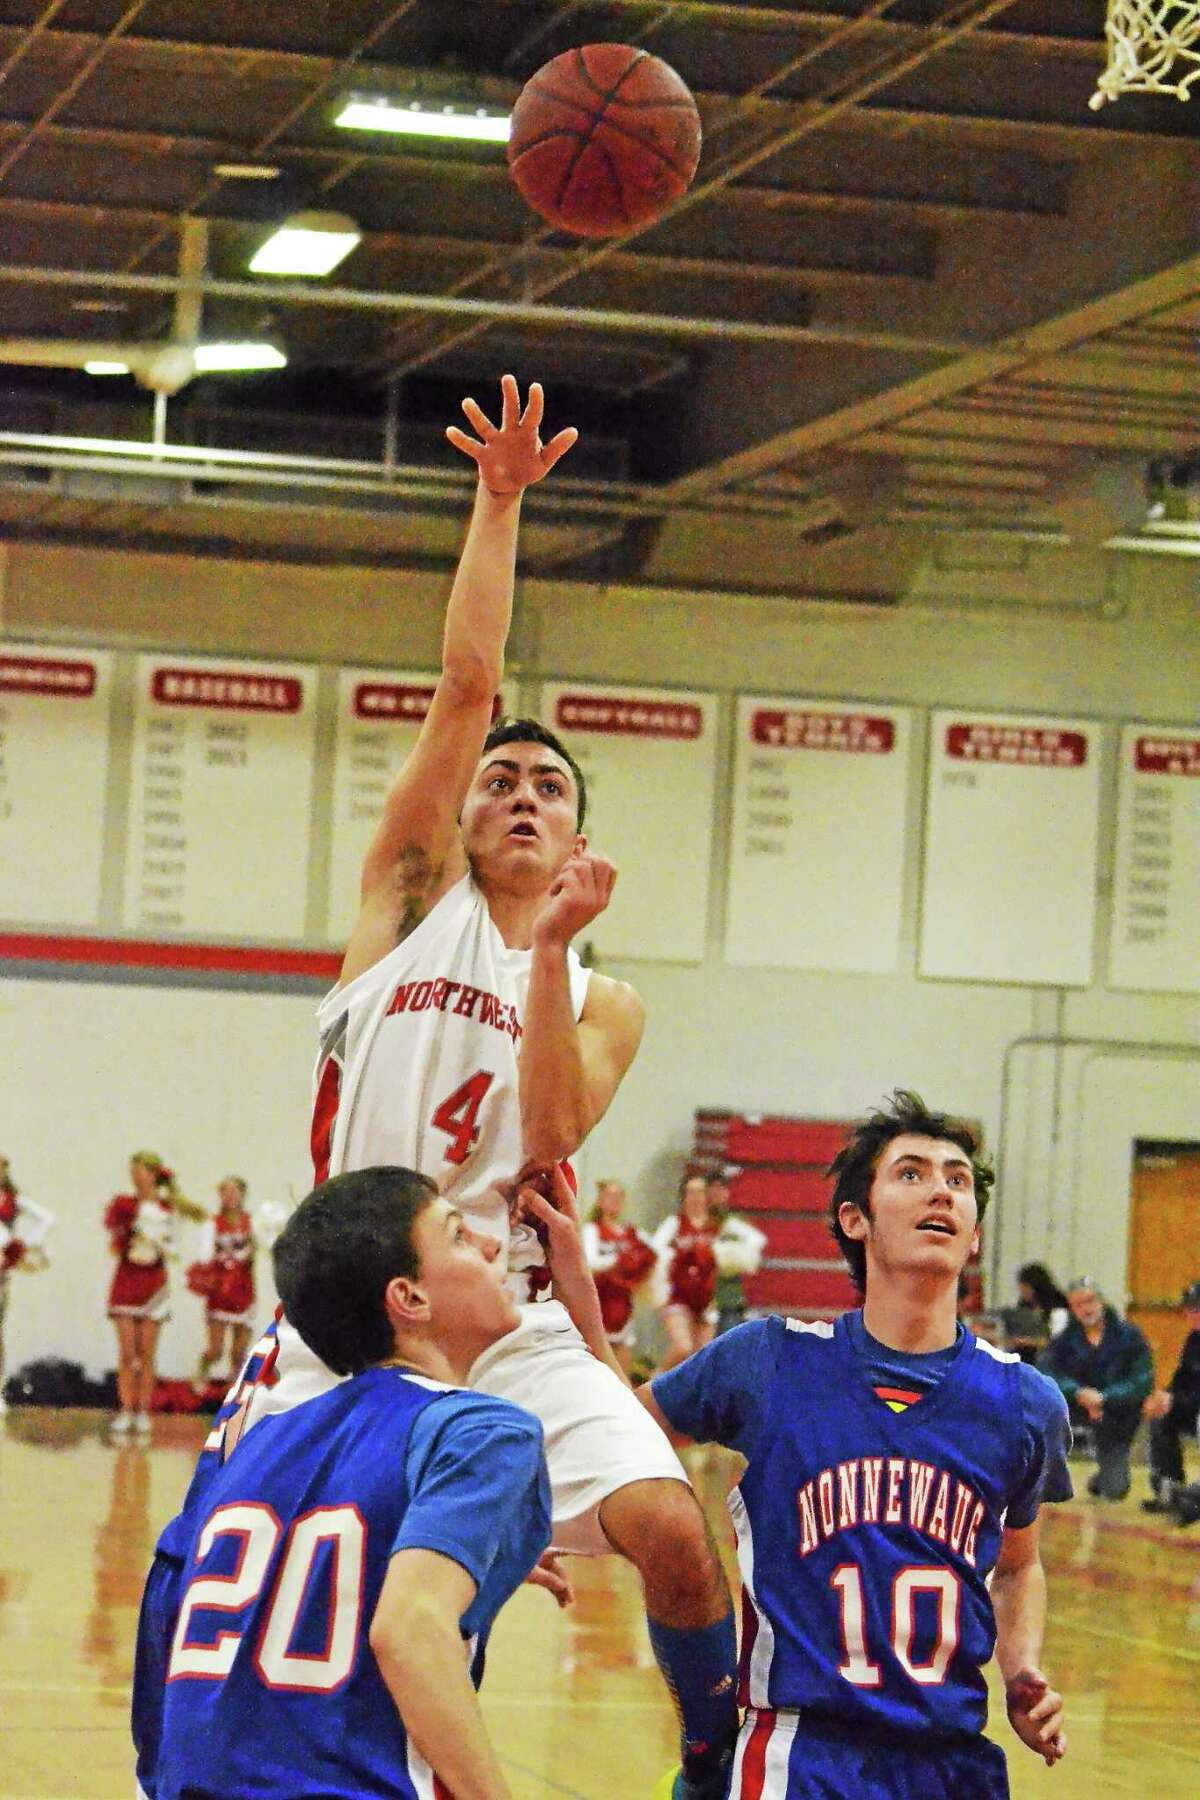 Northwestern's Zach Tuxbury floats his shot over Nonnewaug's Dan Ecesdy for two of his 13 points the Highlanders 61-57 overtime win against the Chiefs.